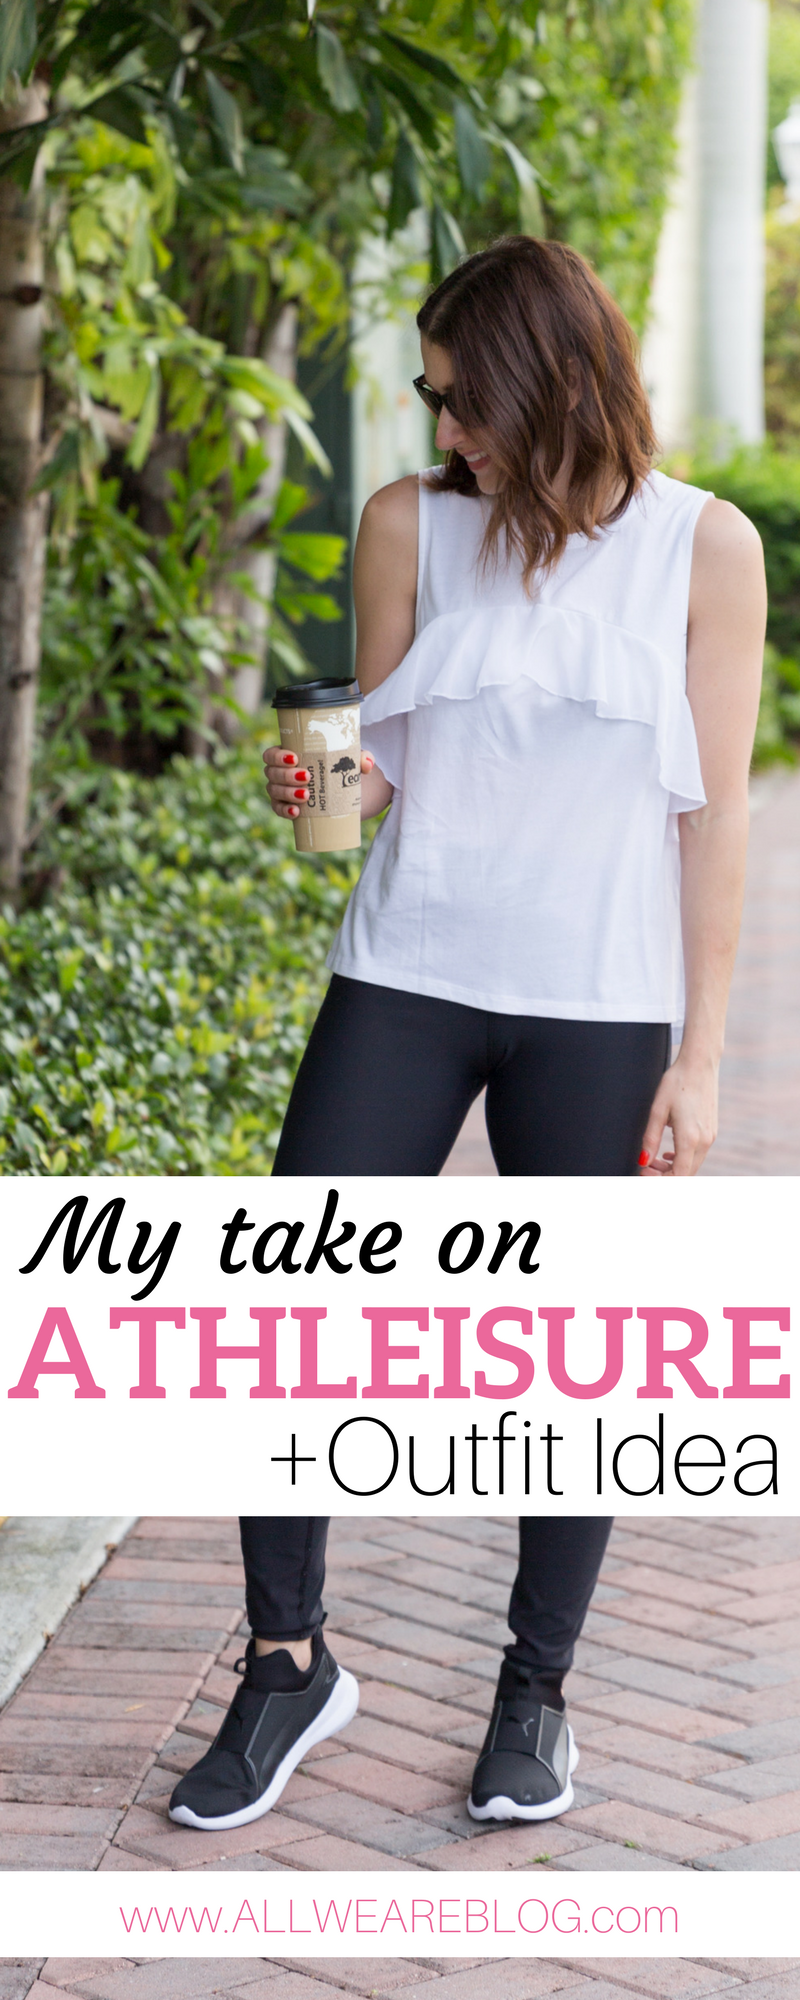 My Take on Athleisure